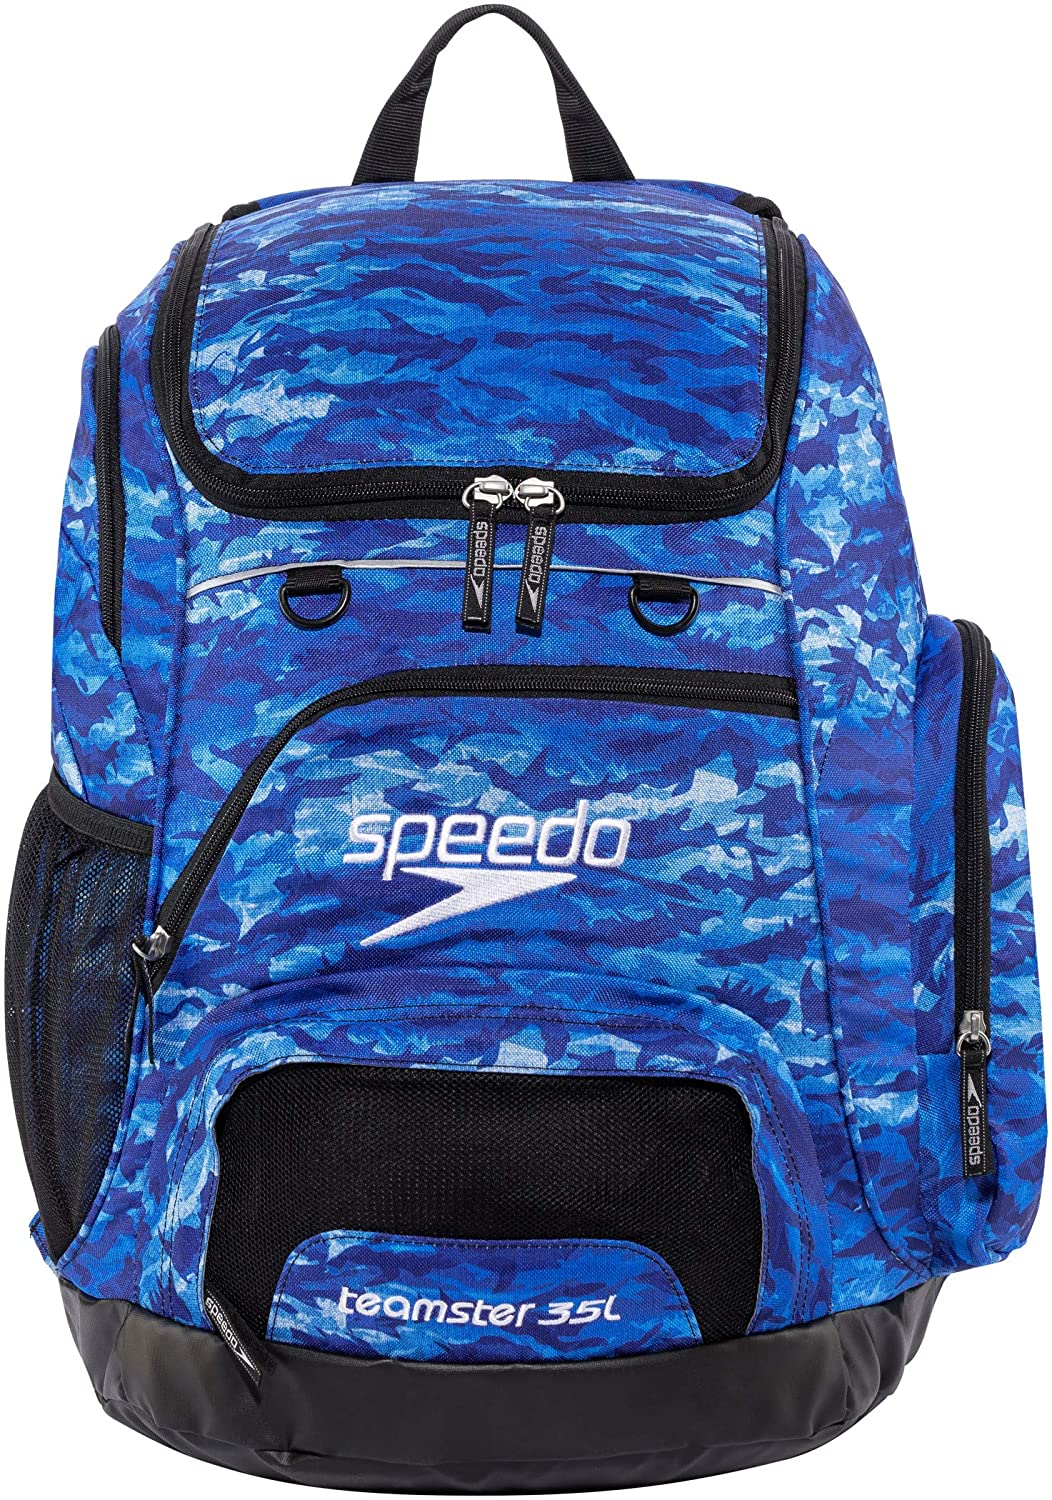 Speedo Teamster' Backpack